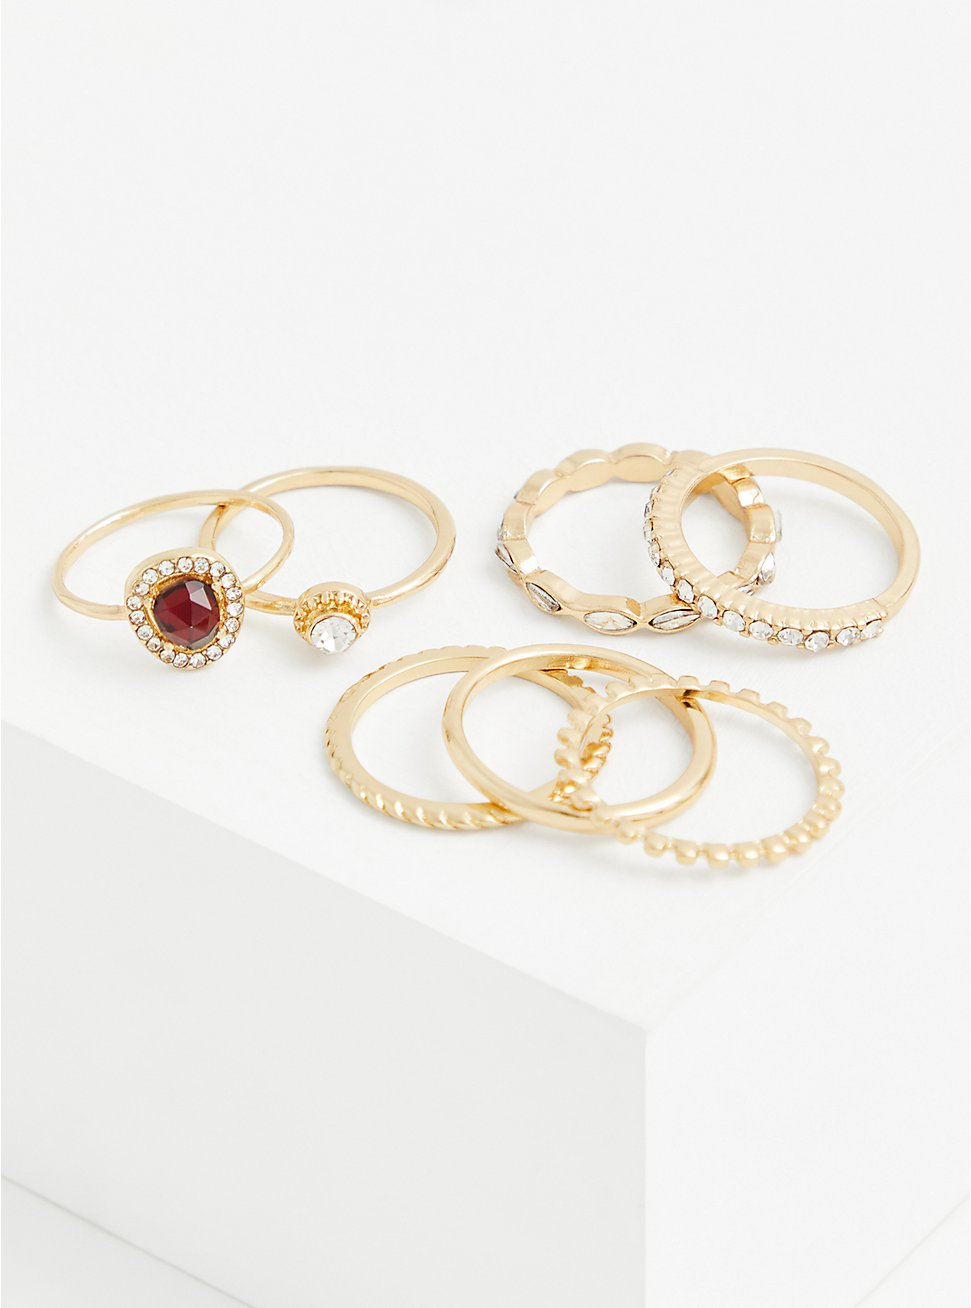 Gold-Tone and Red Faux Stone Ring Set - Set of 7, GOLD, hi-res